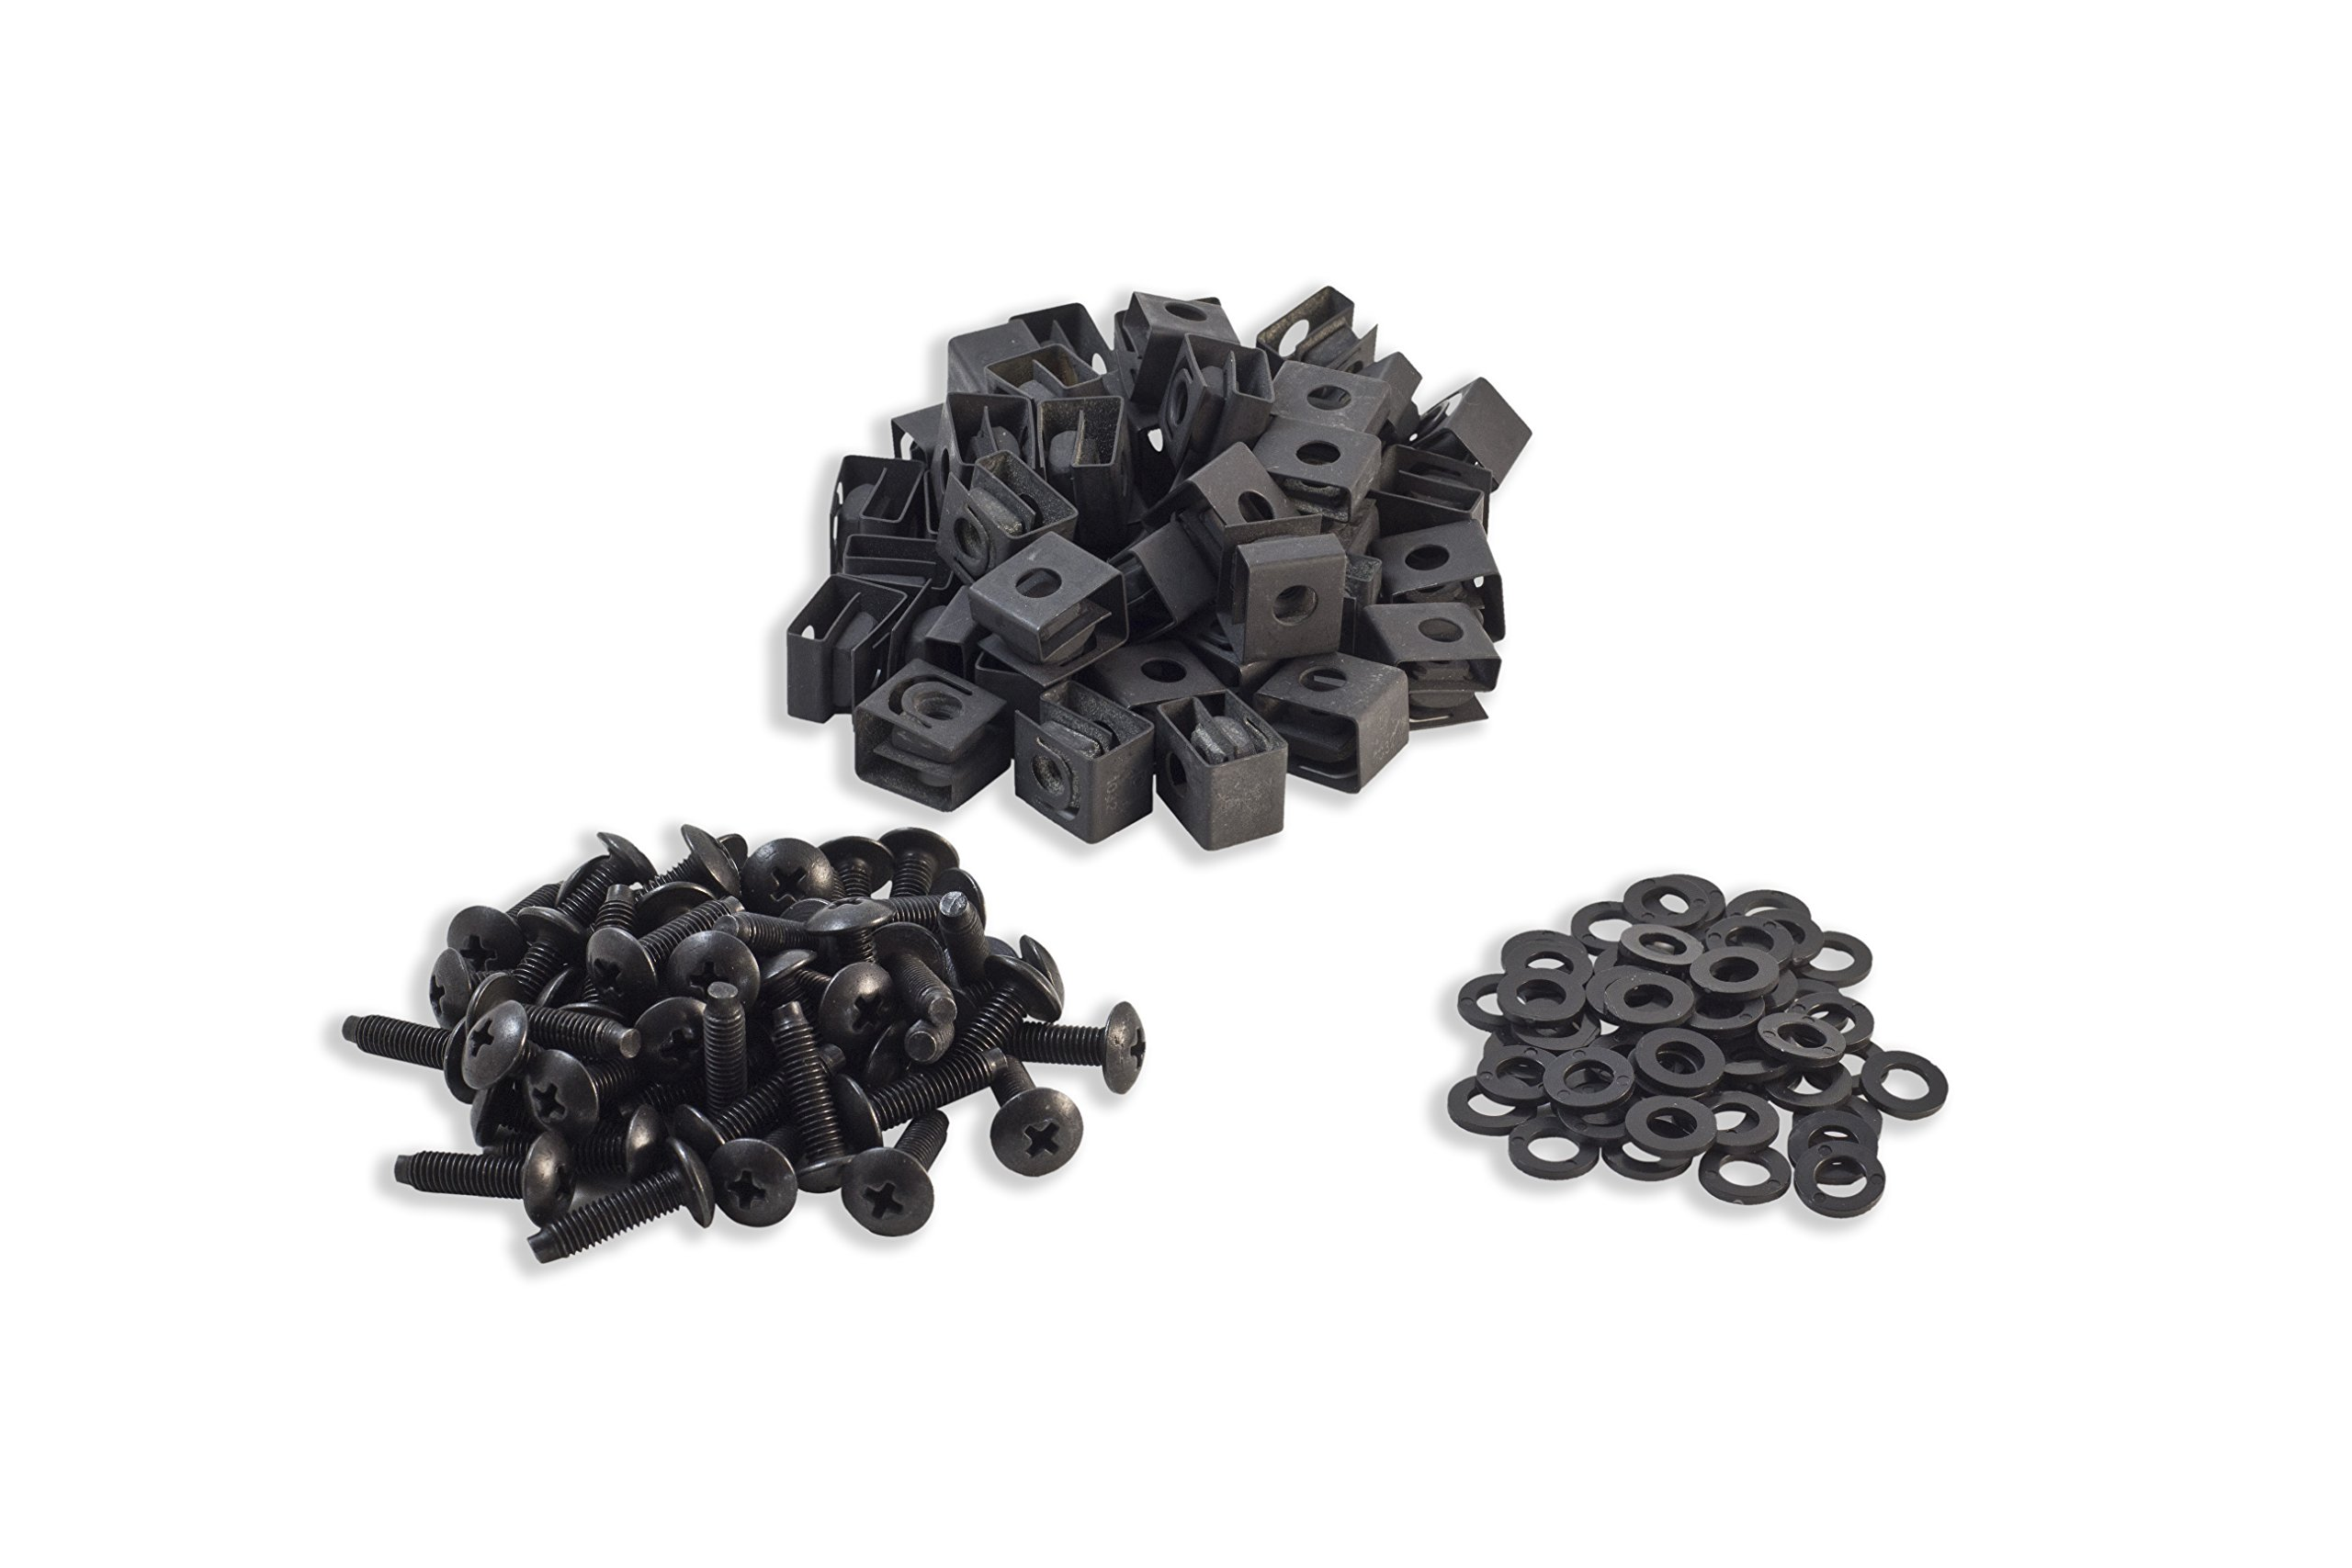 RackGold 12-24 Slide-on Cage Nut & Screws w/Washers 25-Pack - USA Made by RackGold (Image #2)